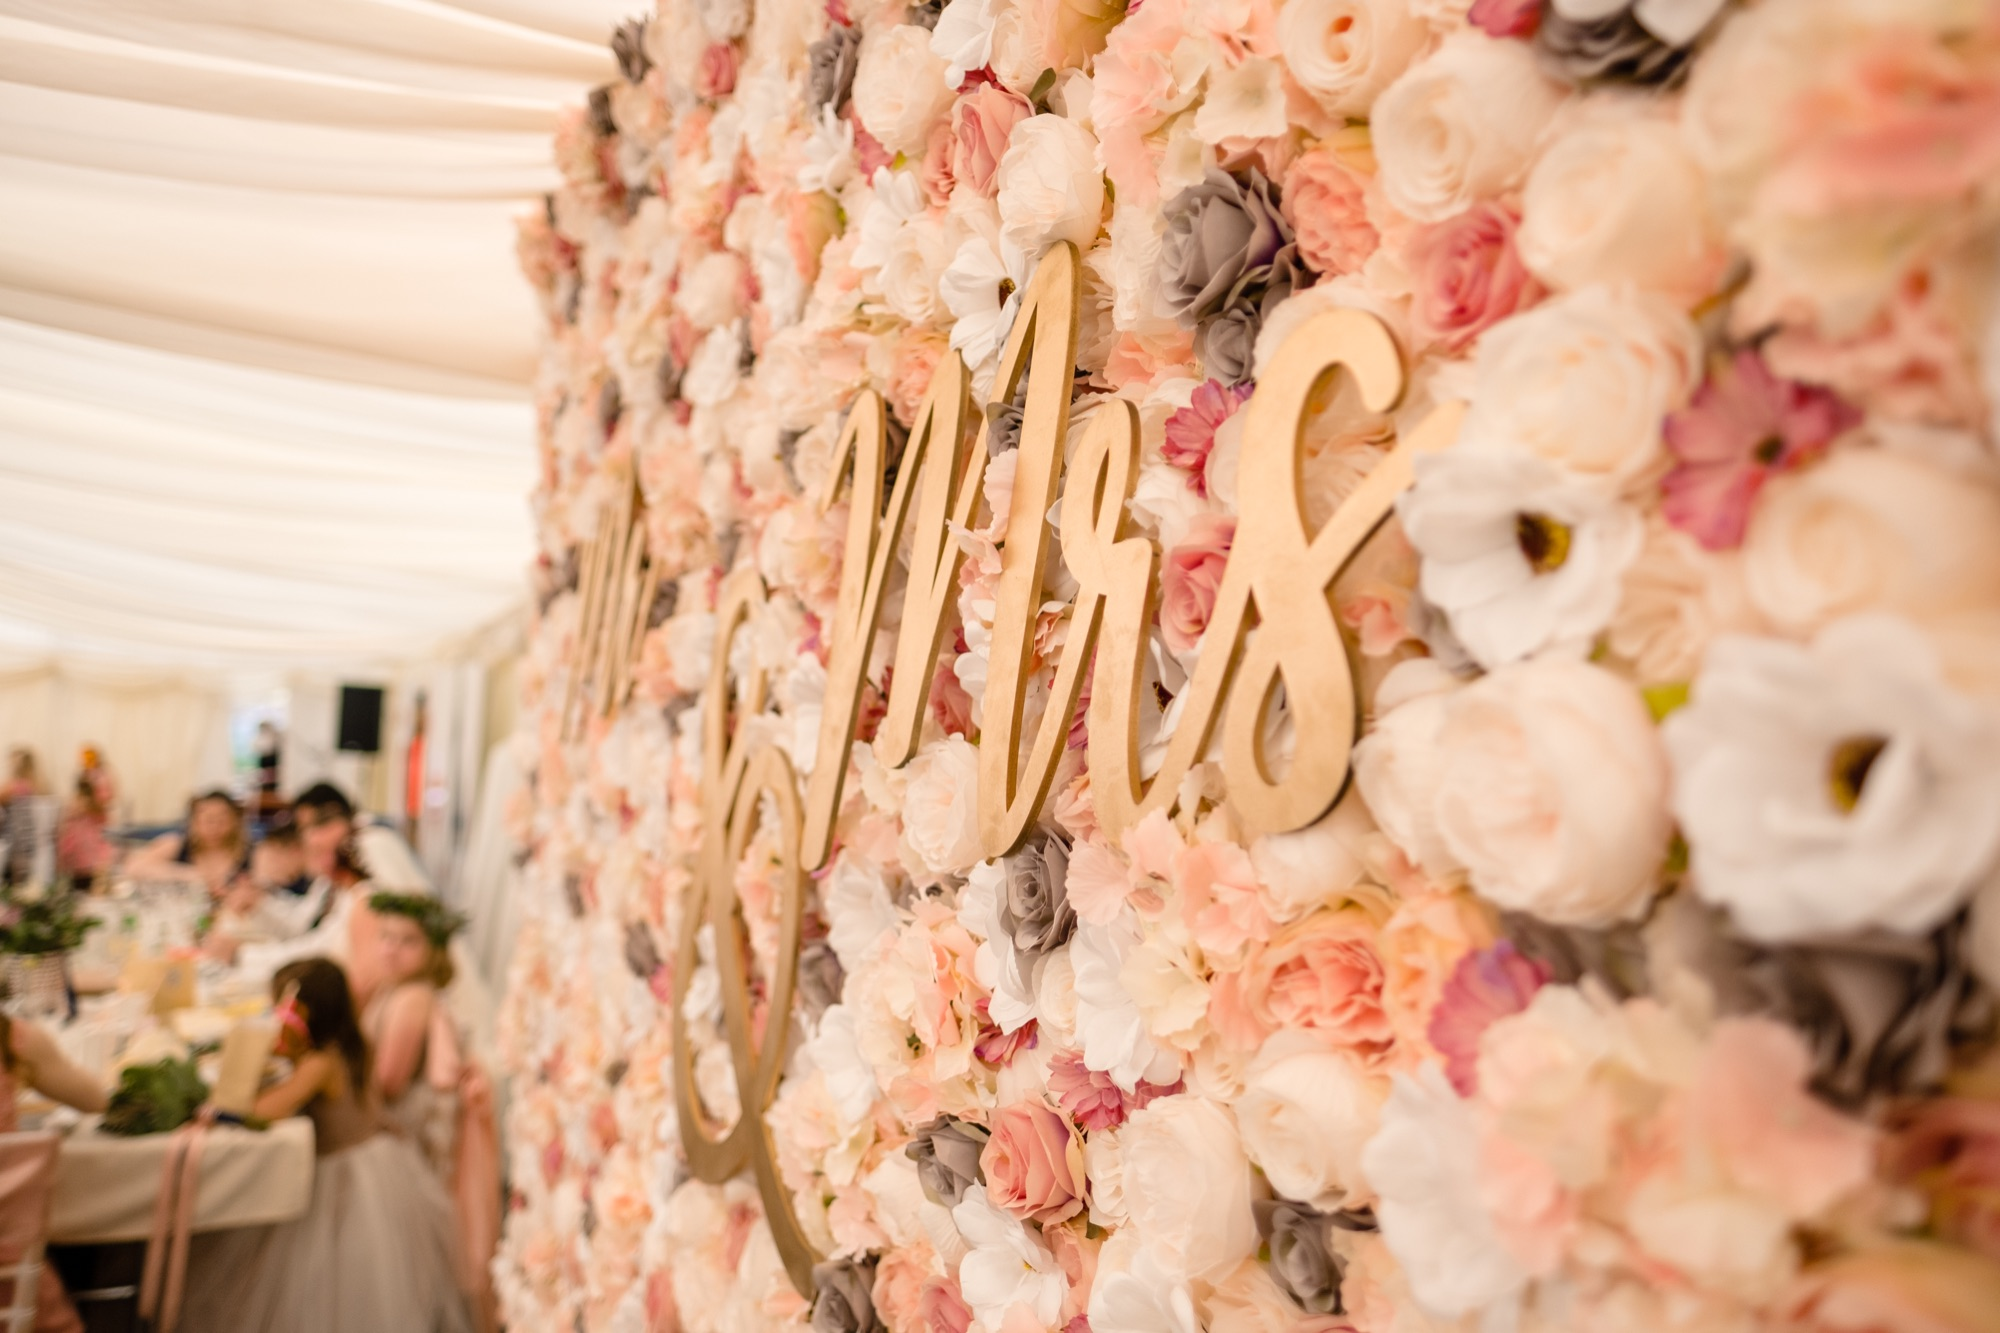 Flower wall wording